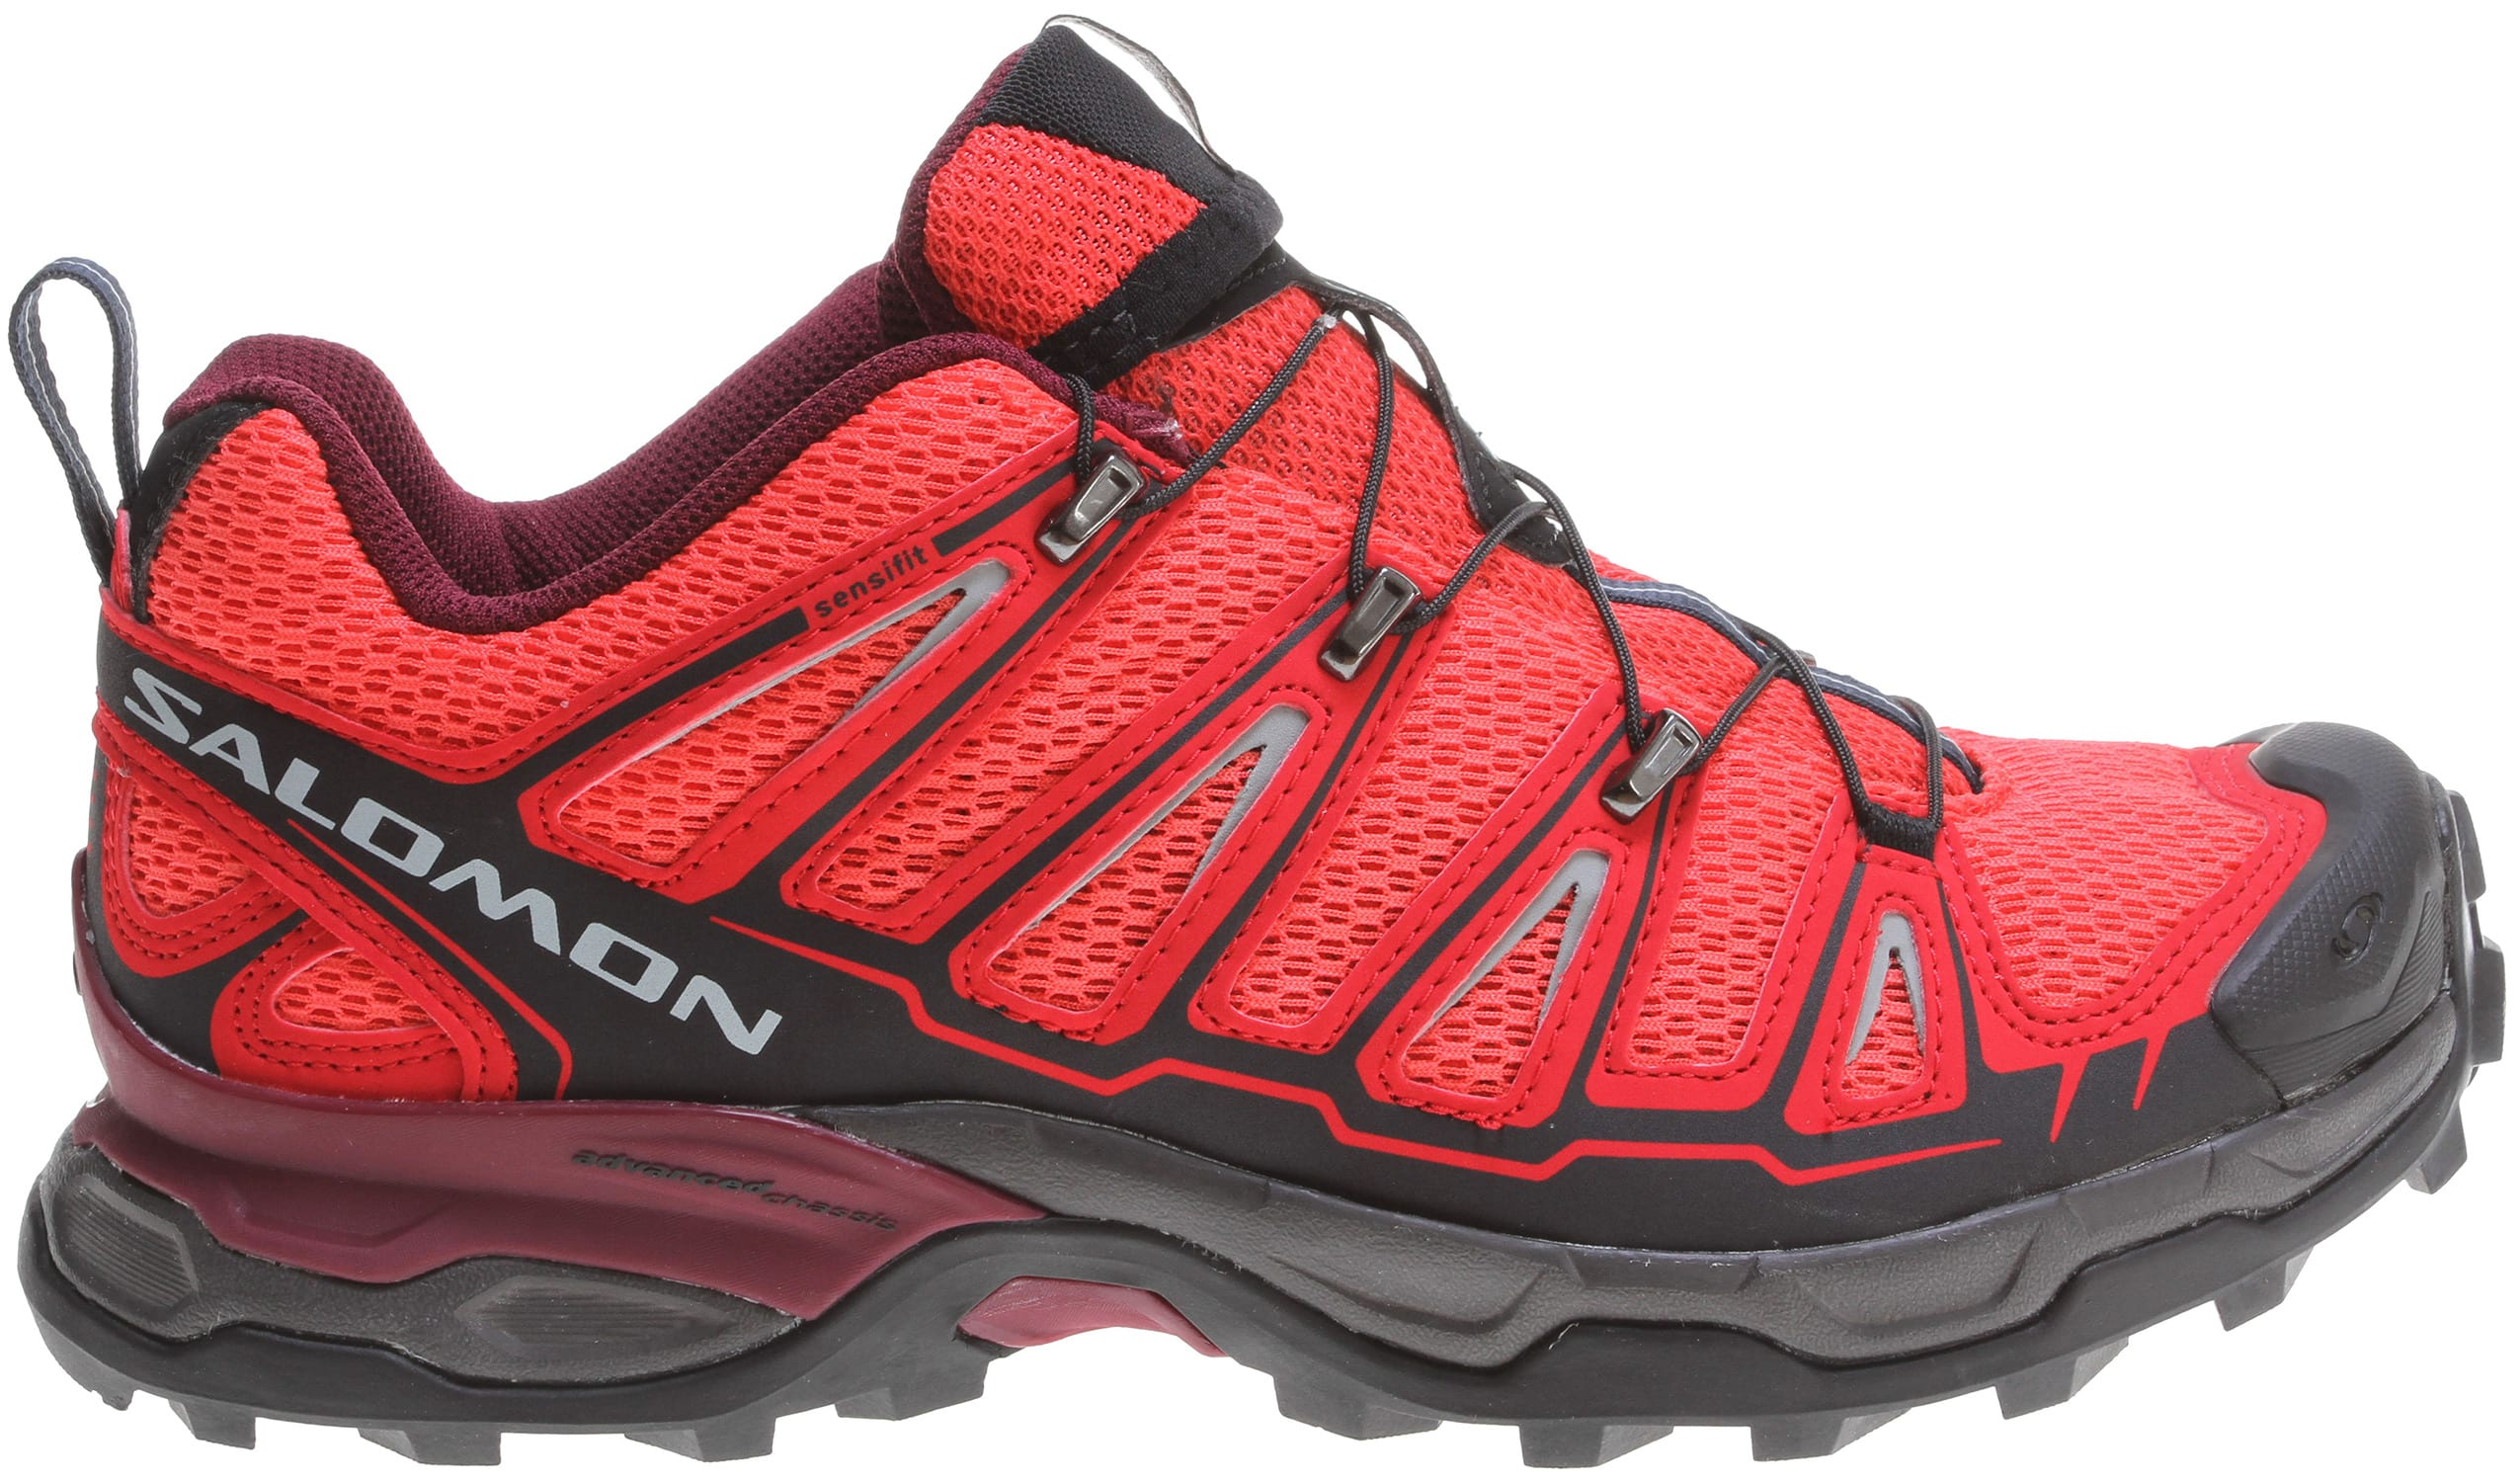 Salomon X Ultra Mid Womens Gtx Trail Running Shoes